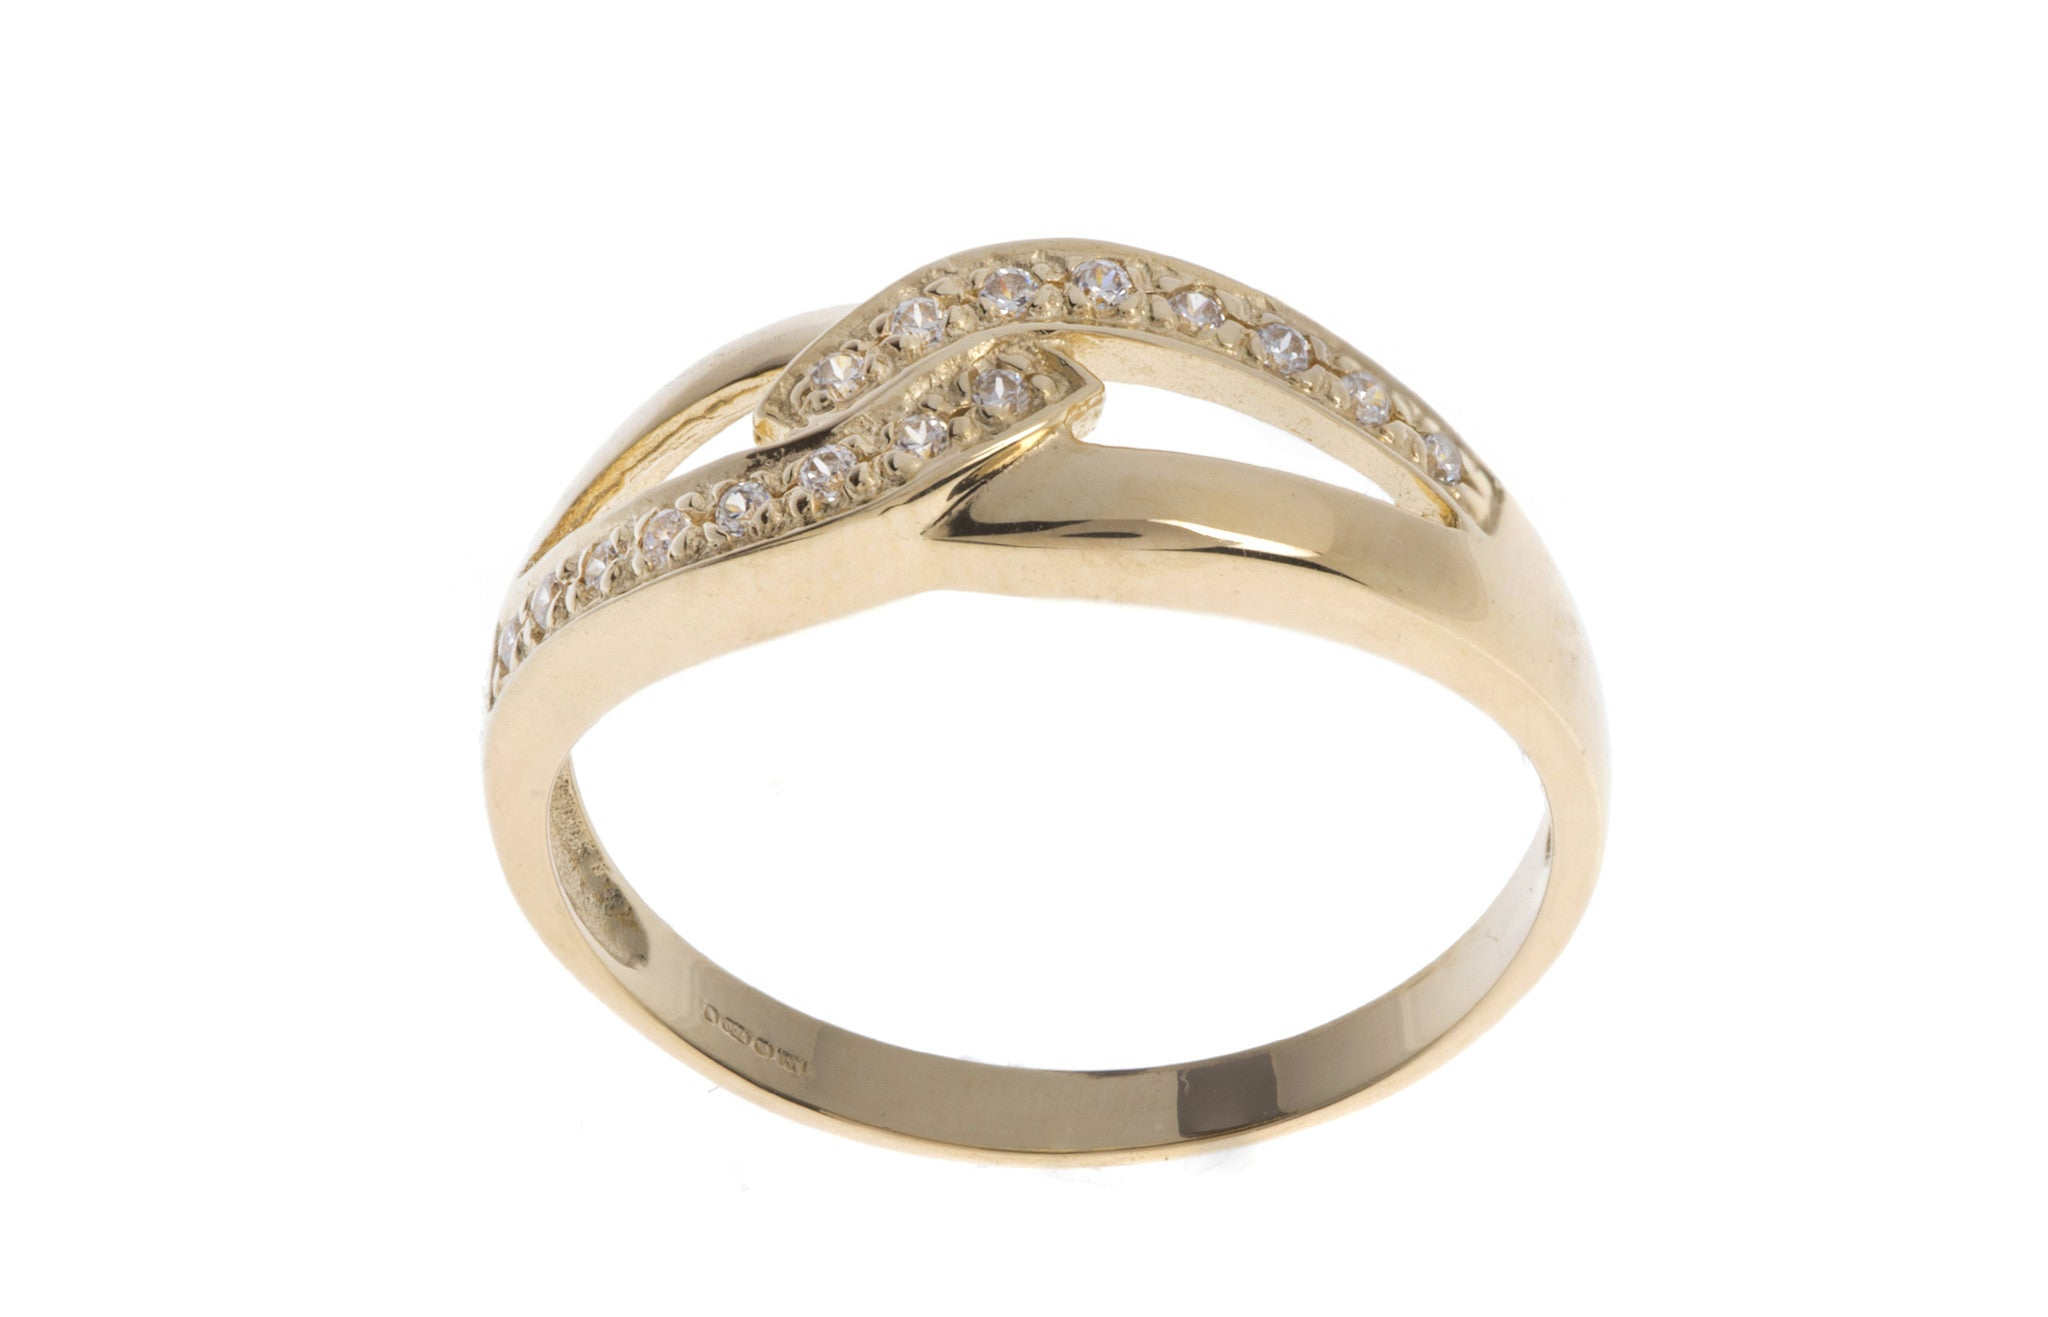 18ct Yellow Gold Cubic Zirconia Dress Ring, Minar Jewellers - 5